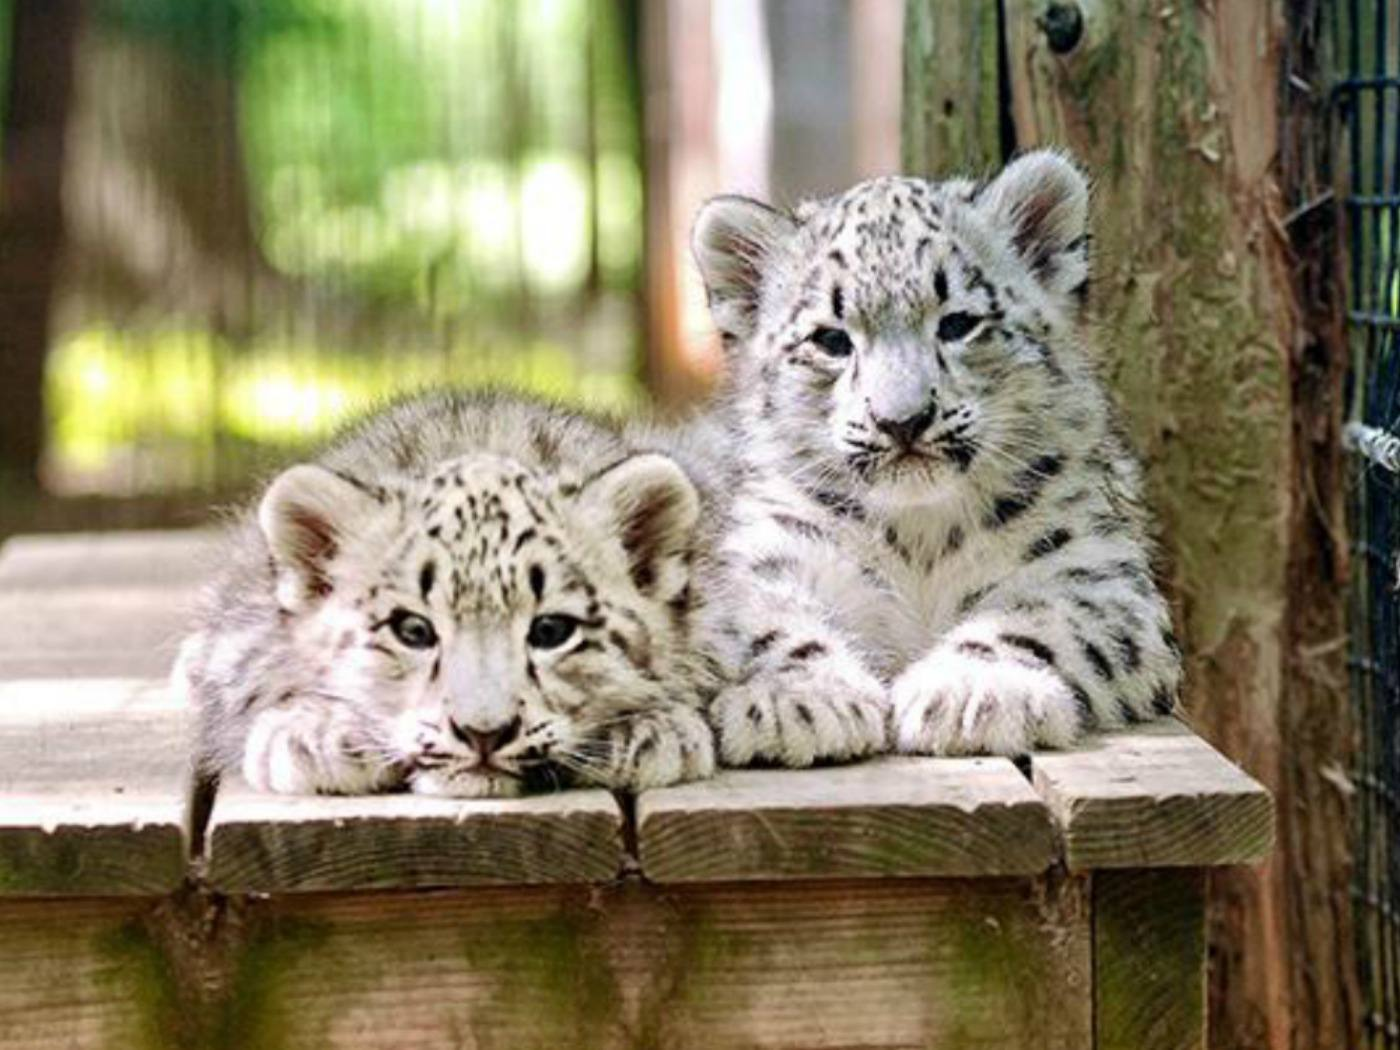 Best Zoo Locations in the United States